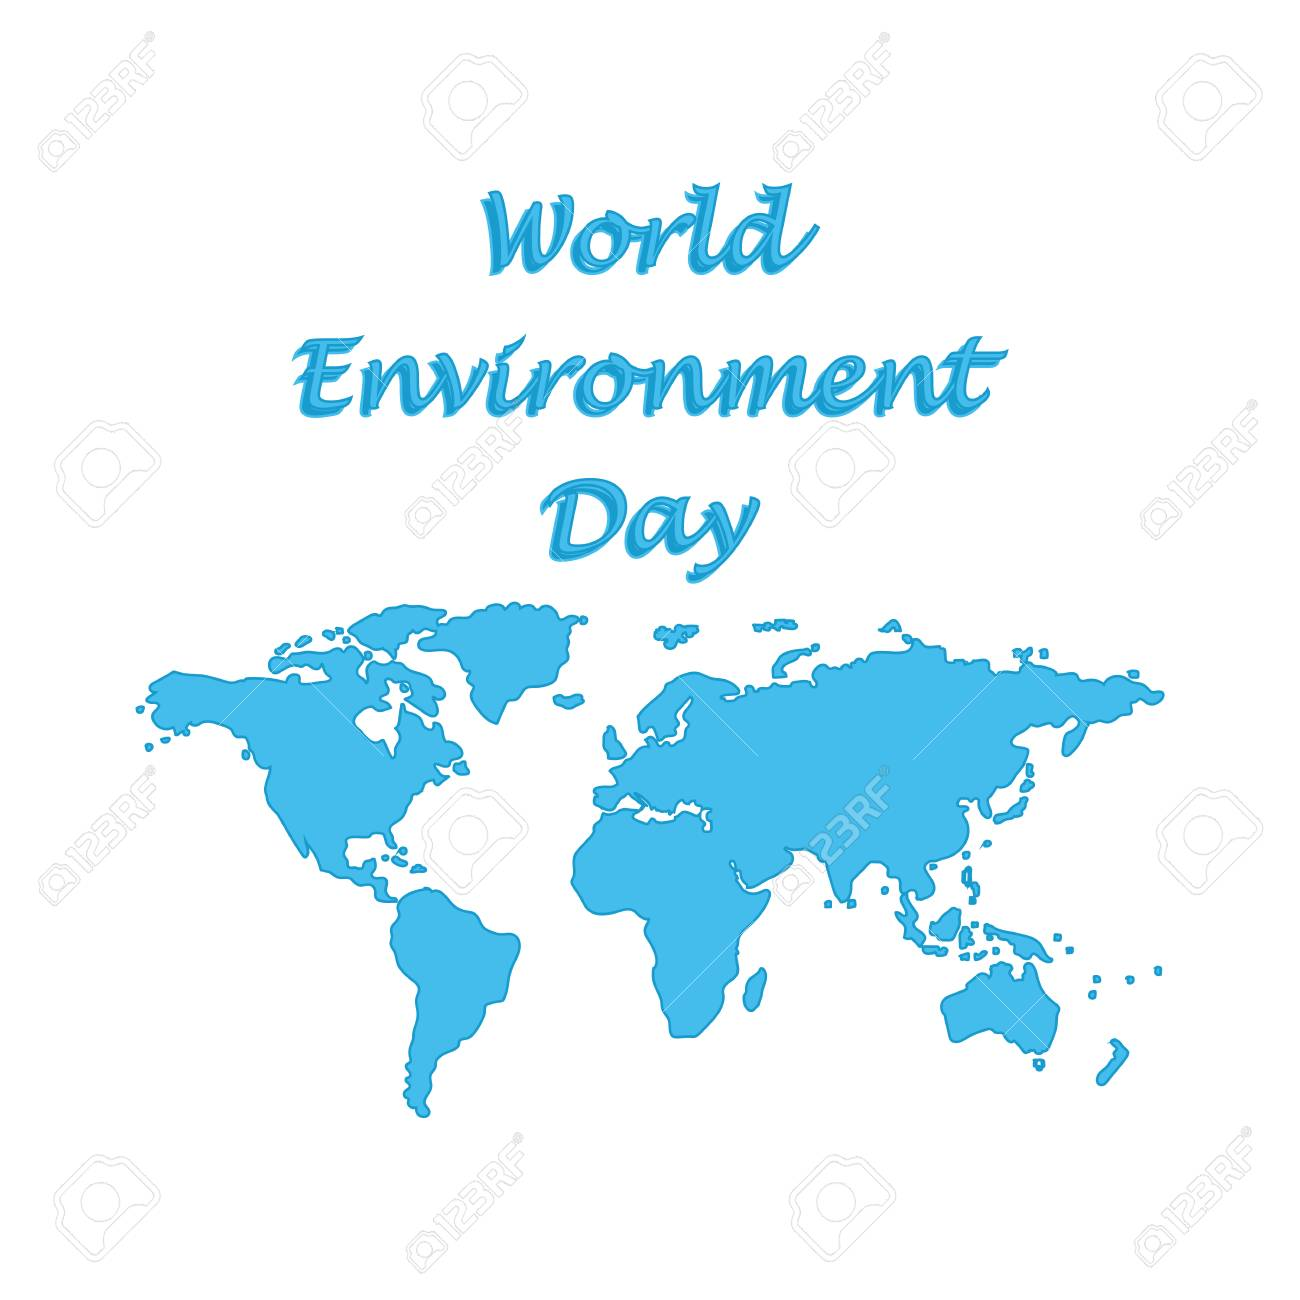 World environment day symbolic world map blue isolated on white vector world environment day symbolic world map blue isolated on white background flat style art creative modern vector illustration gumiabroncs Image collections